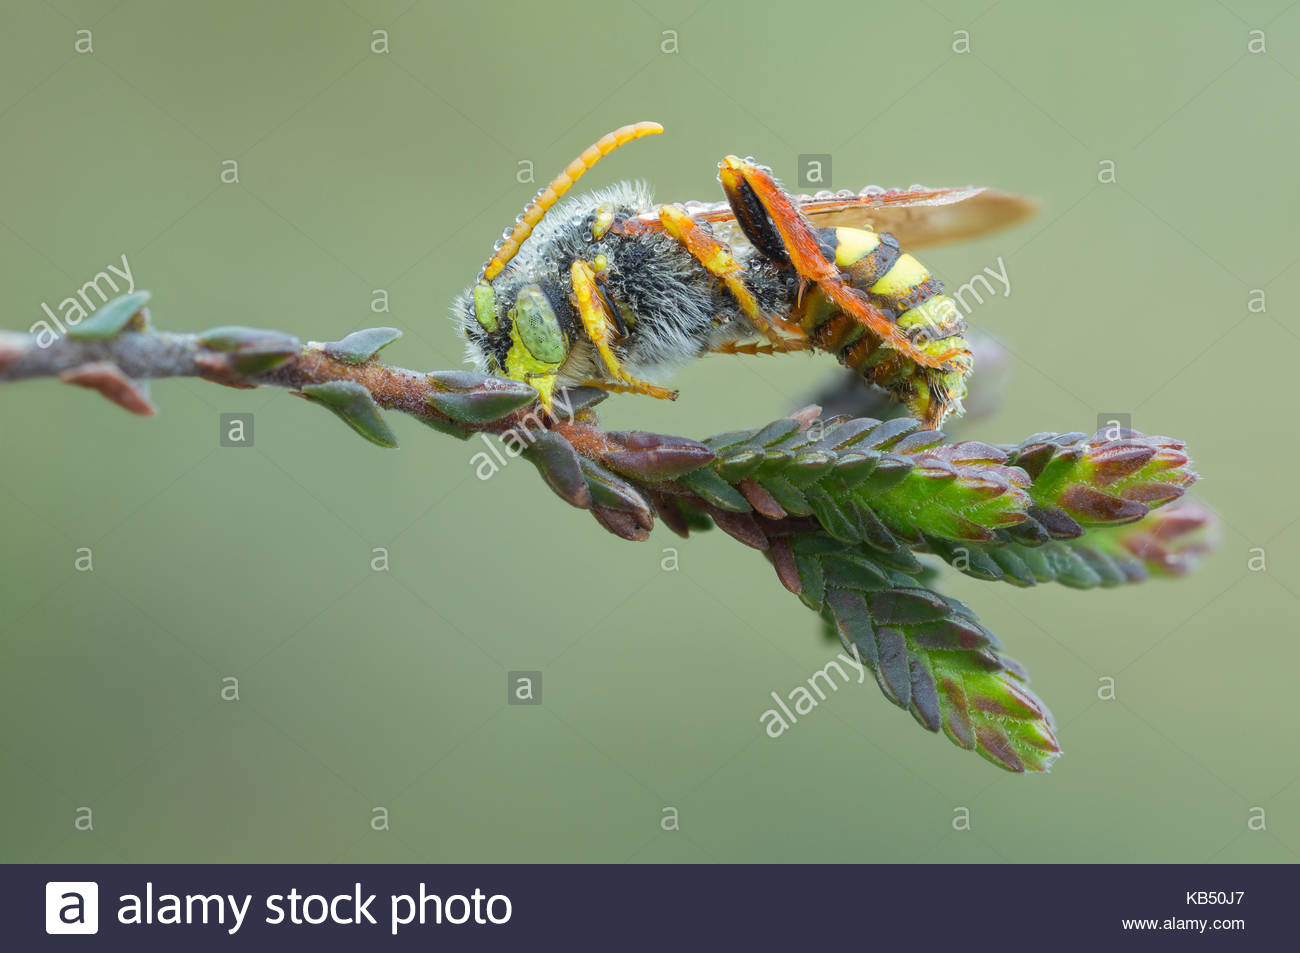 Gooden's Nomad Bee (Nomada goodeniana) resting on stem, The Netherlands, Noord-brabant, Dommeldal - Stock Image